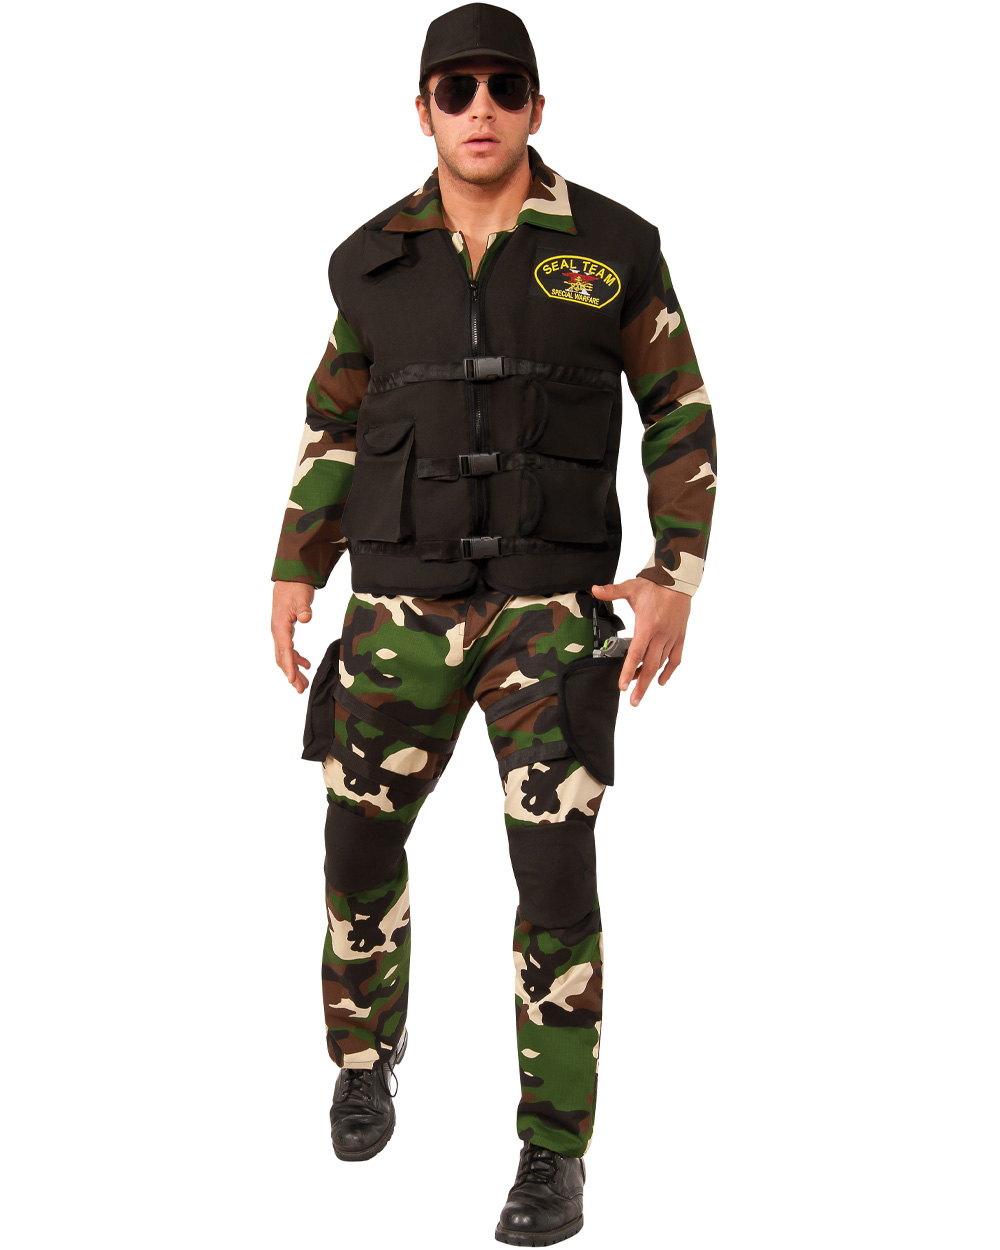 See our Military costumes in sizes for men. Get ready for fun and adventure! You'll love our great prices and selection, only at Costume Craze!